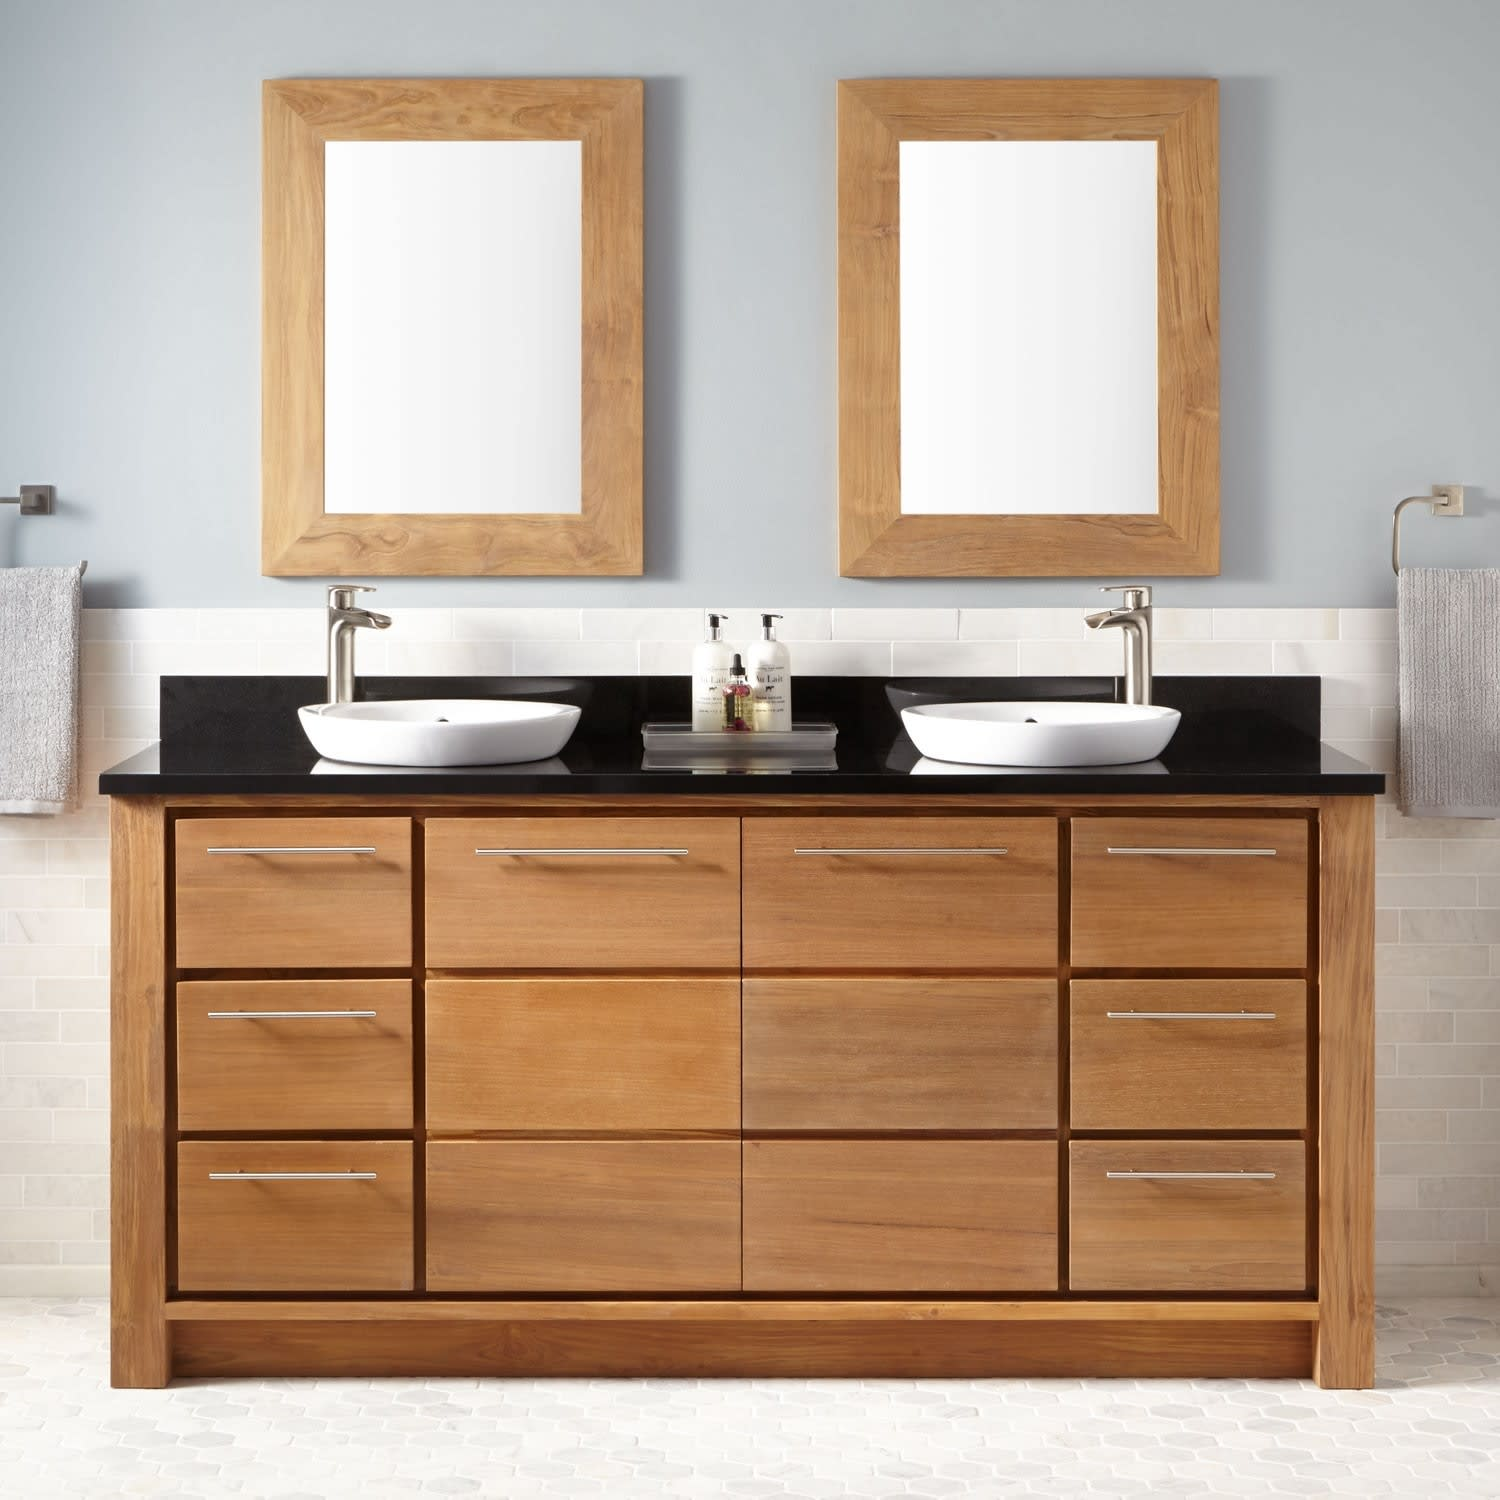 Signature Hardware 435319 Natural Wood Absolute Black Granite Venica 72 Double Vanity Set With Teak Cabinet Granite Vanity Top And Semi Recessed Sinks Faucet Com